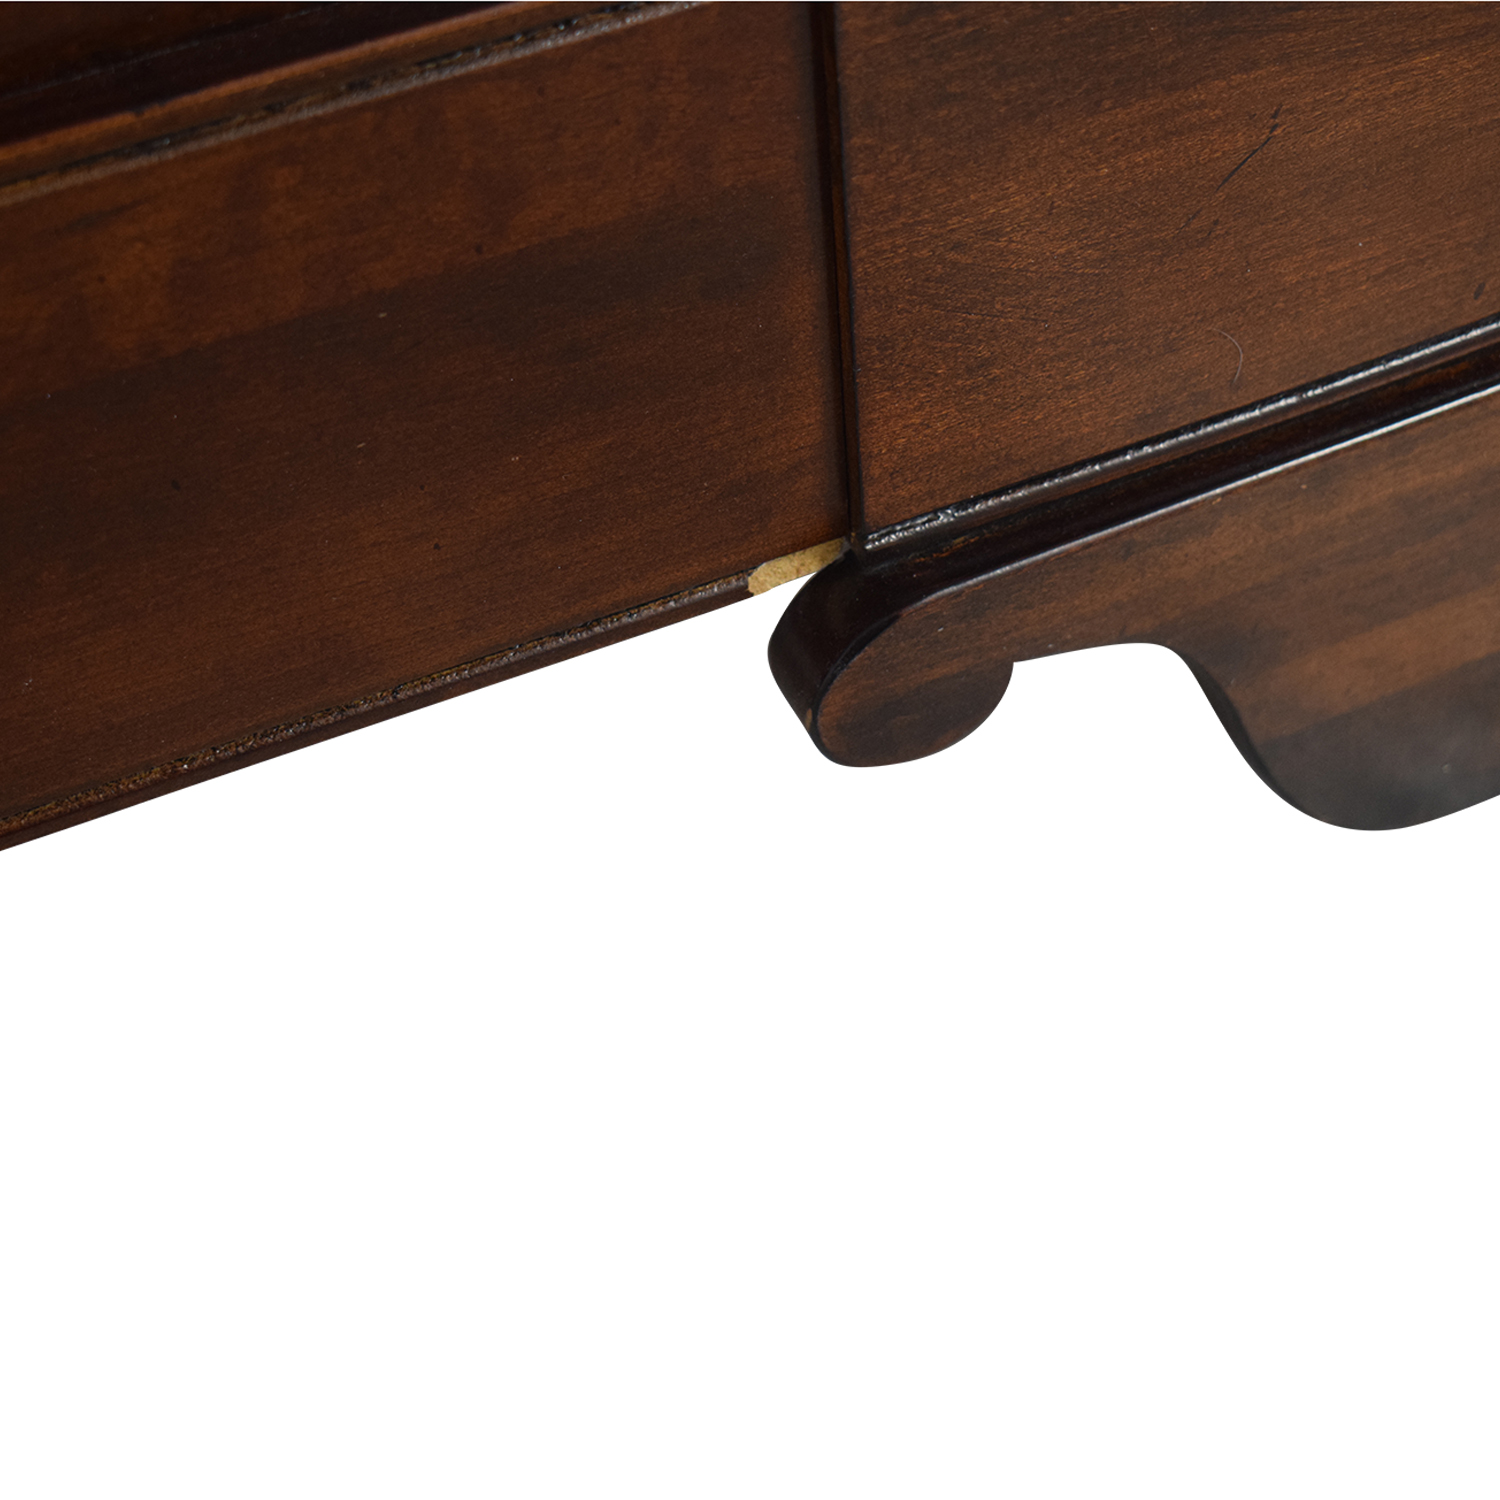 Macy's Macy's Wood Queen Sleigh Bed Frame dimensions